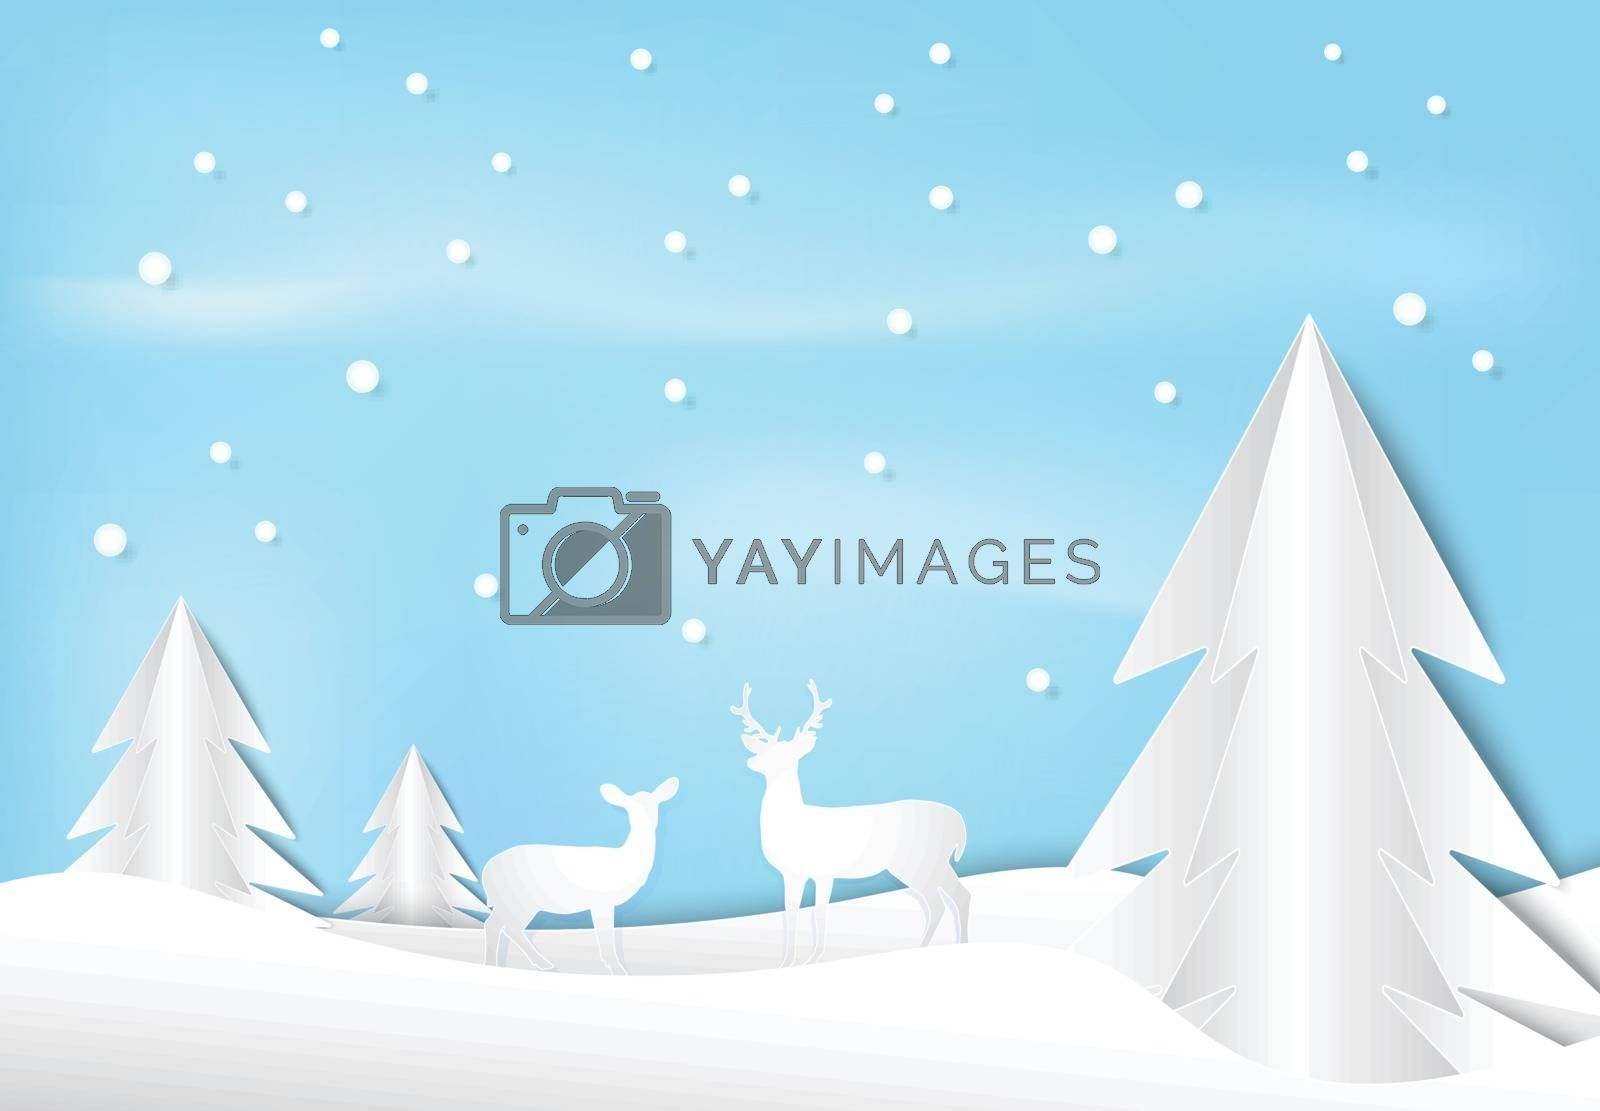 Deer and pine tree with snow paper art style, Christmas season background paper cut illustration